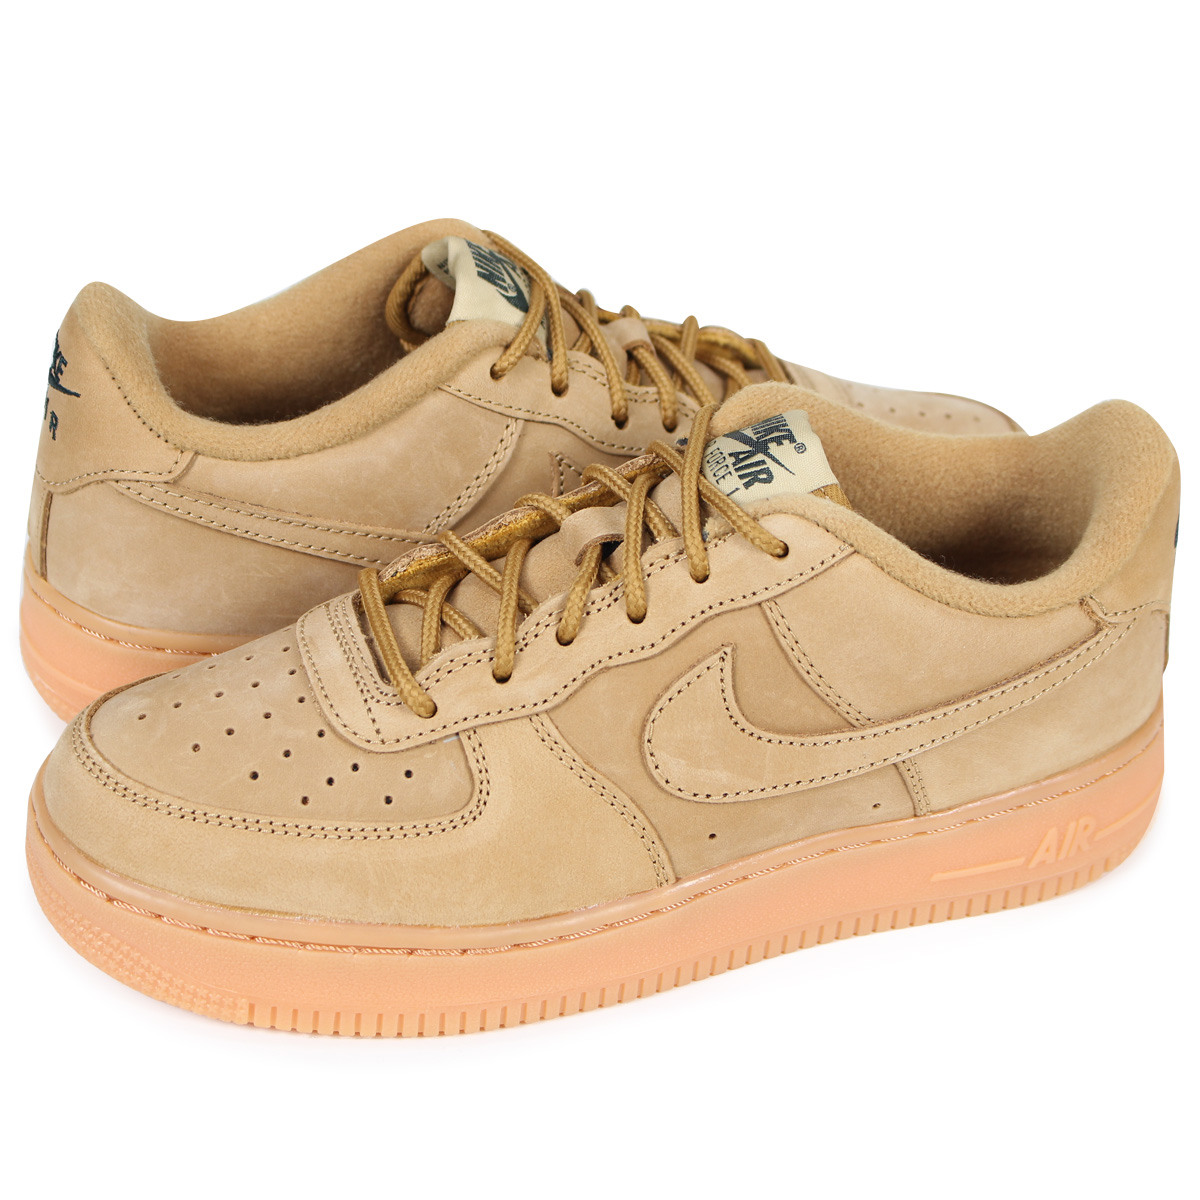 outlet boutique popular brand special for shoe NIKE AIR FORCE 1 LOW WINTER PREMIUM GS WHEAT Nike air force 1 lady's  sneakers 943,312-200 beige [2/28 Shinnyu load]